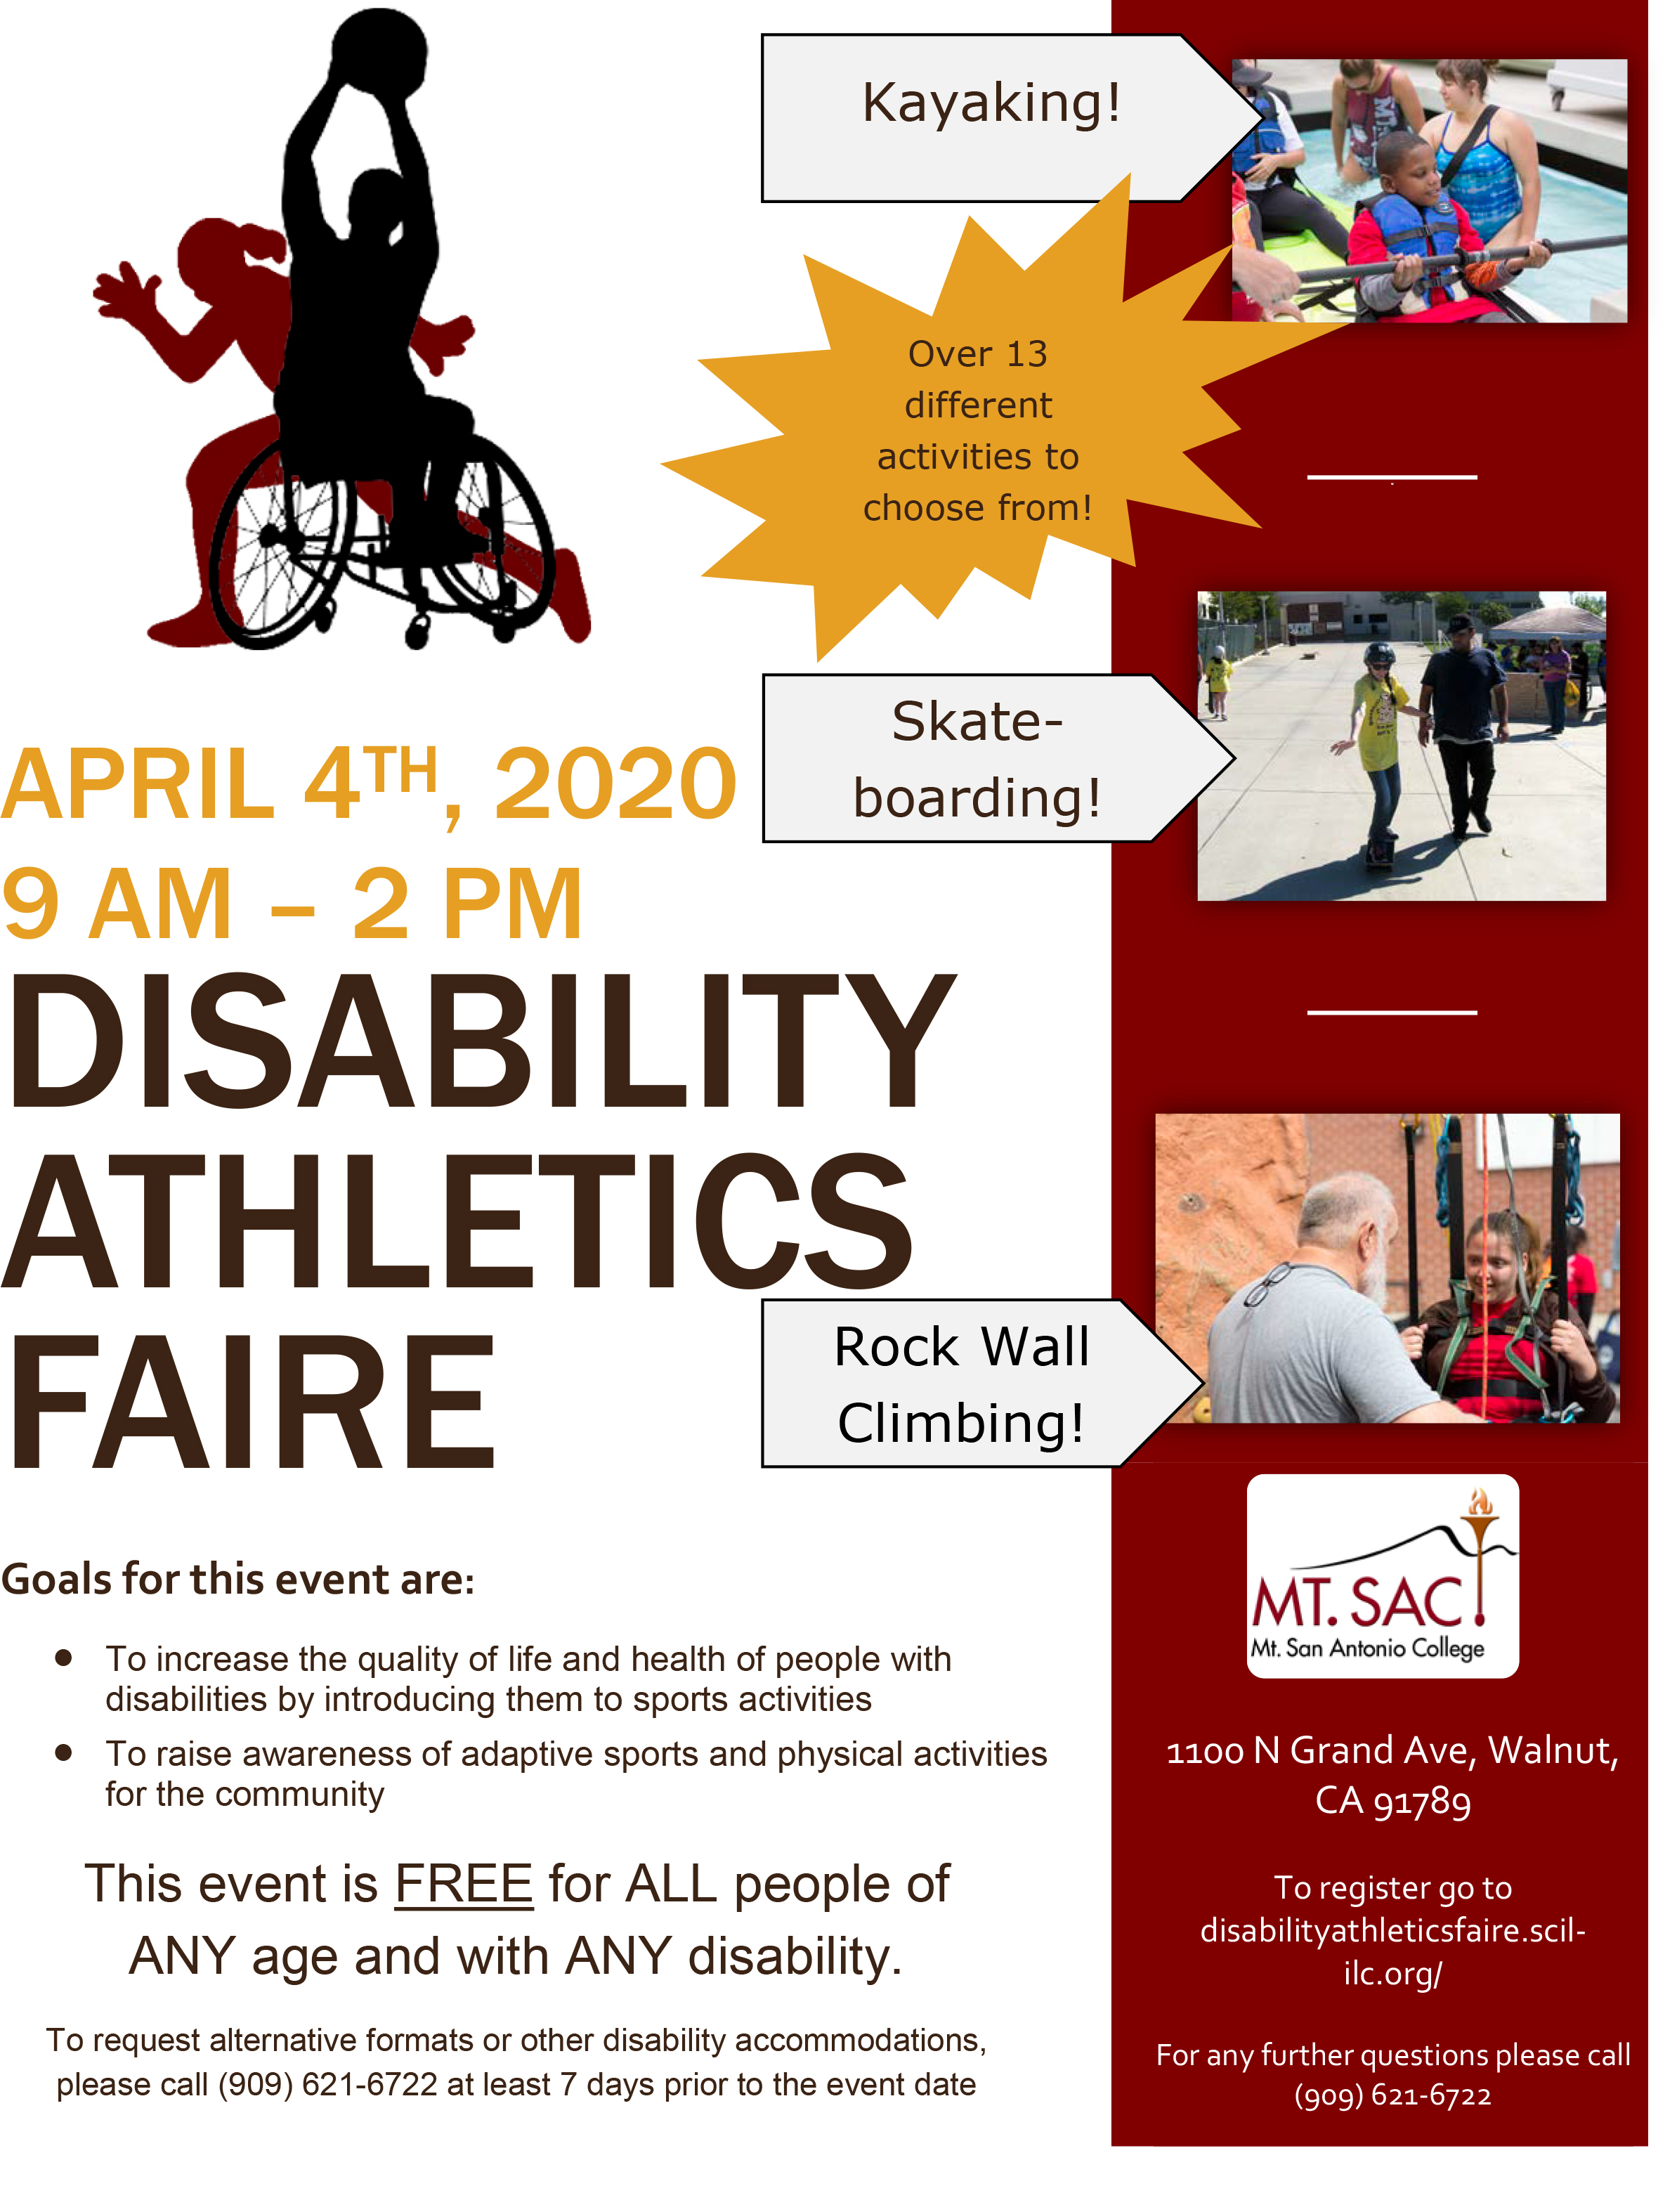 5th Annual Disability Athletics Faire - April 4th, 2020 9 AM to 2 PM